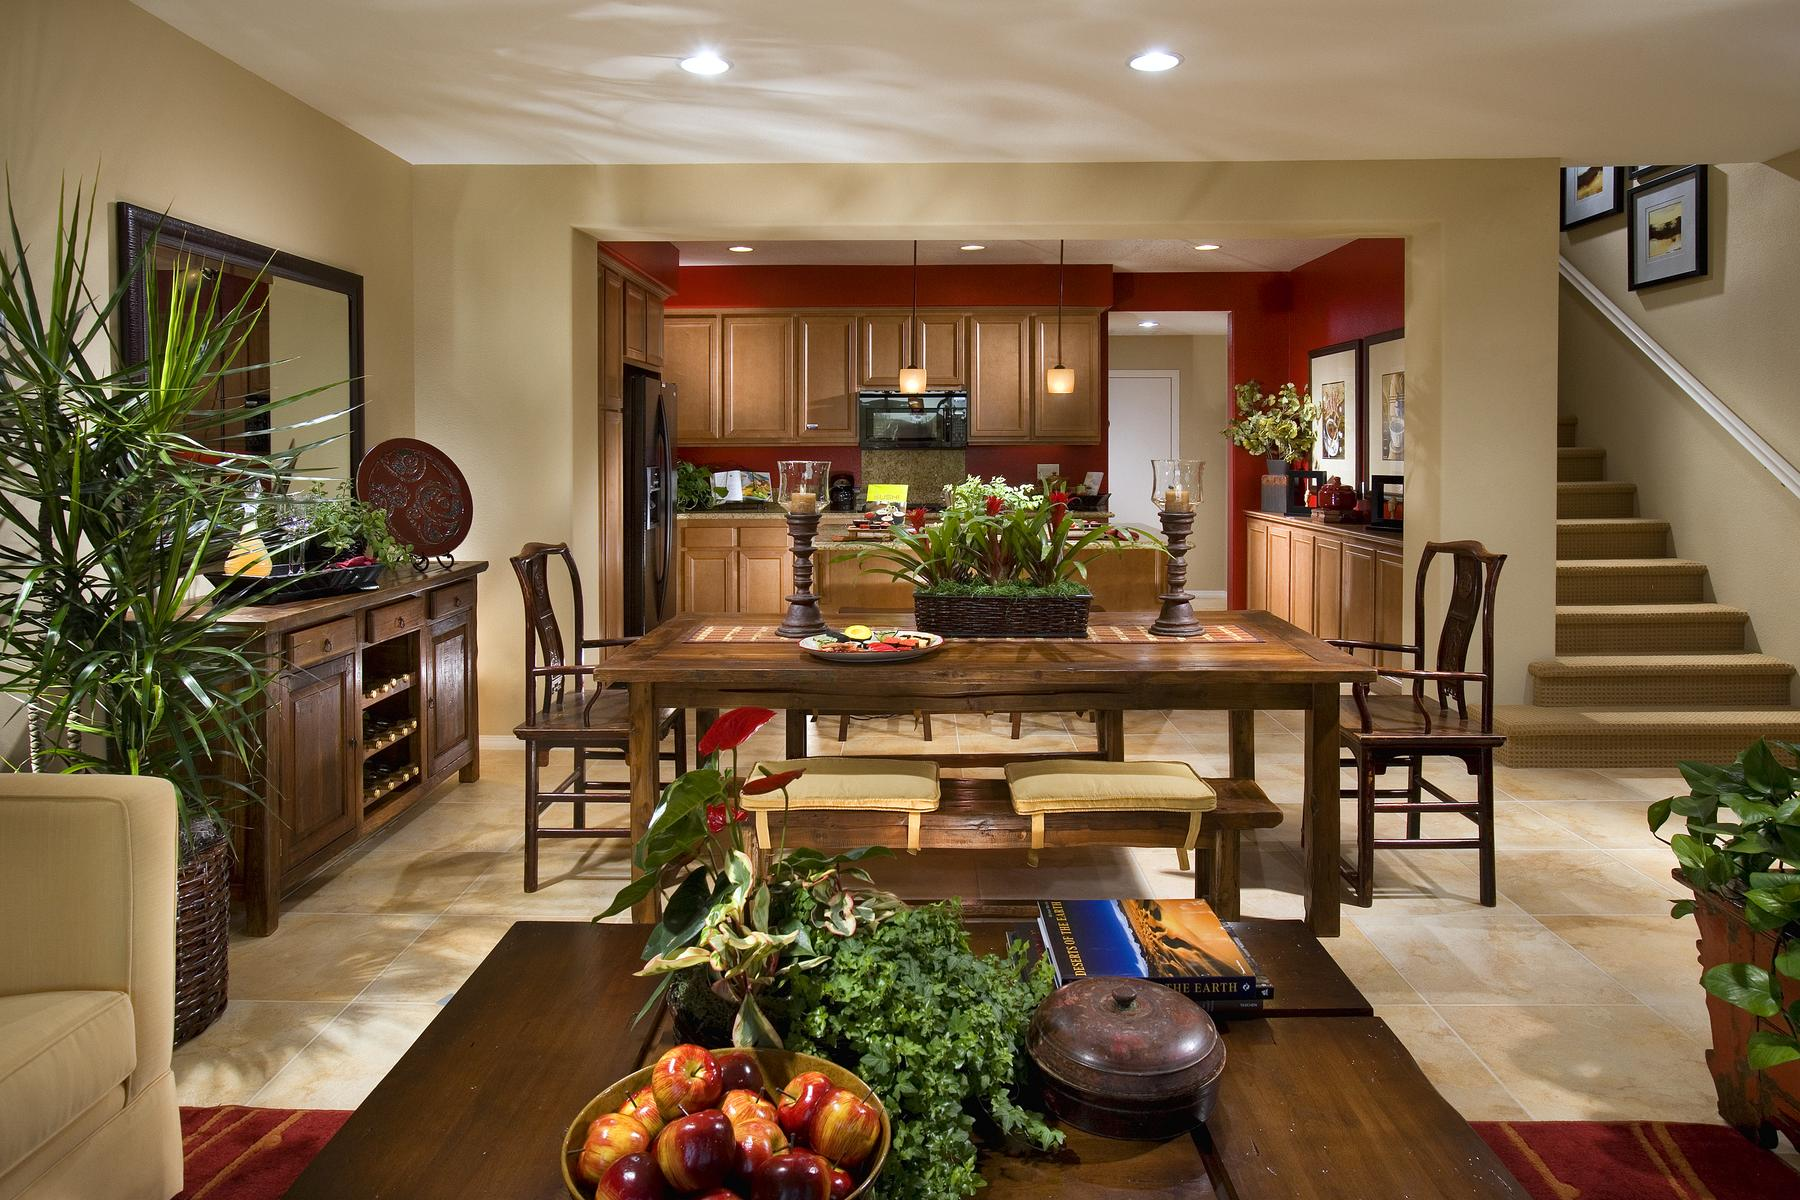 Best Kitchen Gallery: Brookfield Releases Final Townhomes Plus Models At Cordova In Chula of New Model Homes Southern California on rachelxblog.com